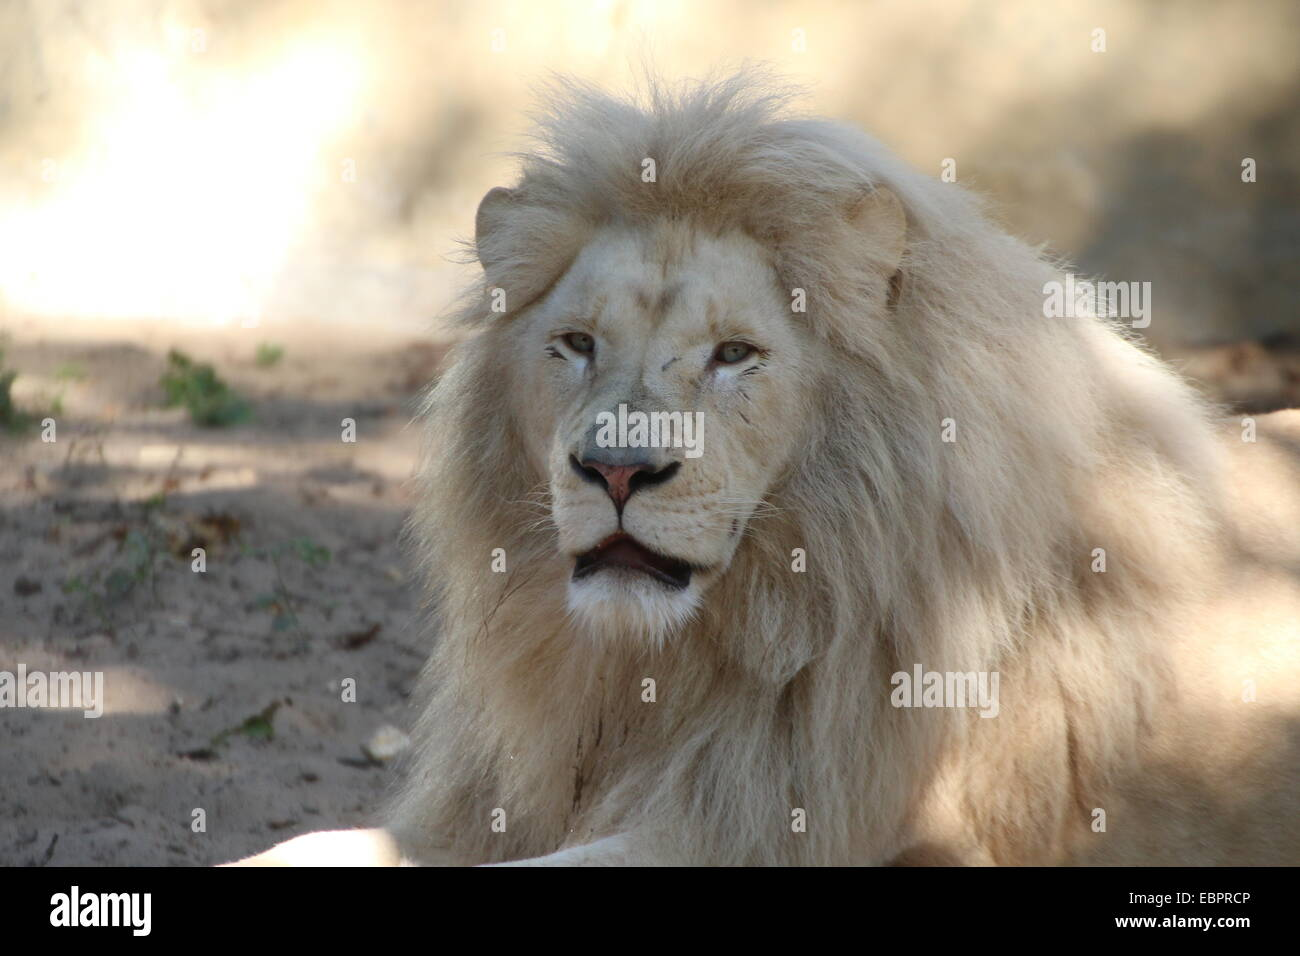 close up of the head of a mature white lion panthera leo. Black Bedroom Furniture Sets. Home Design Ideas